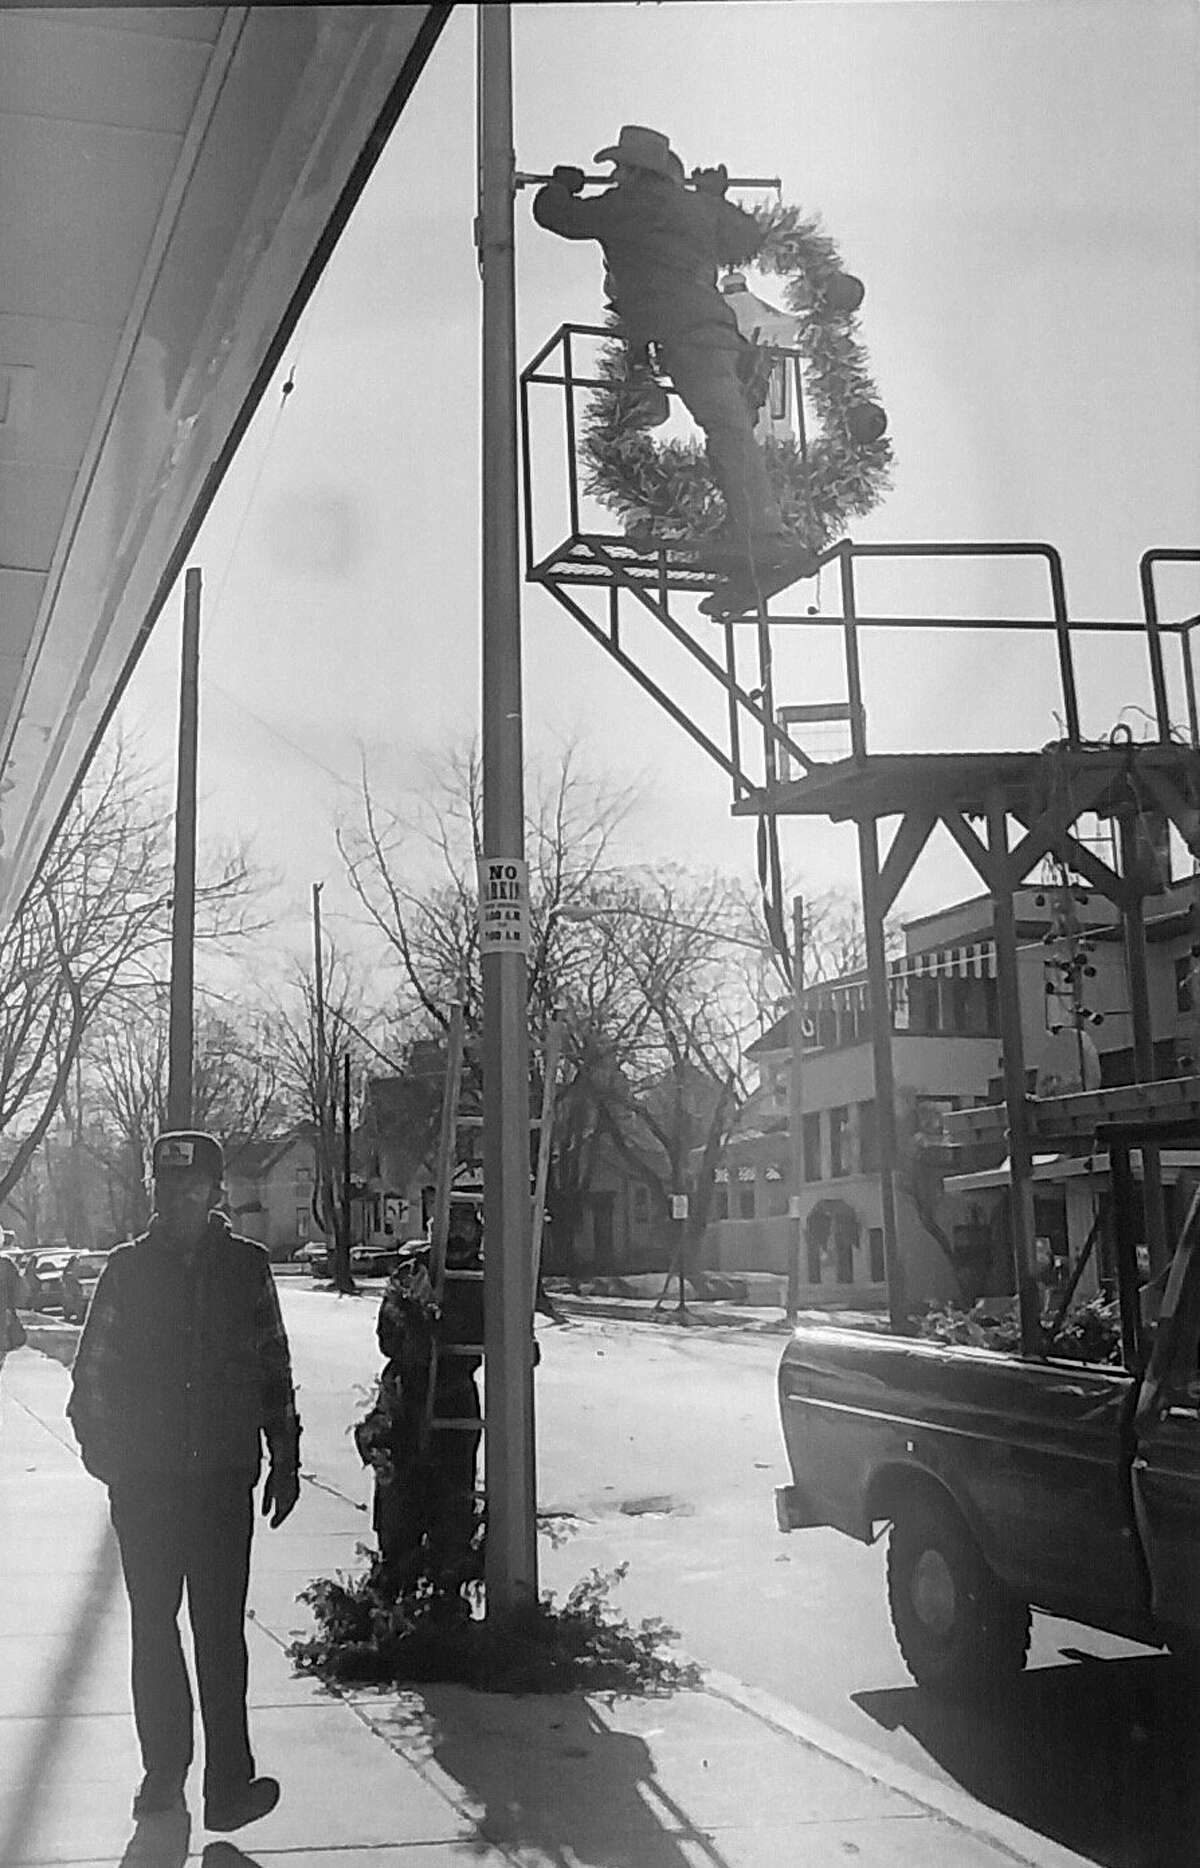 Christmas decorations adorning the streetlight poles in Manistee signal the approach of the Yuletide season. An employee of Mid-Michigan Displays is shown hanging one of the many wreaths decorating downtown Manistee in November 1980. (Manistee County Historical Museum photo)